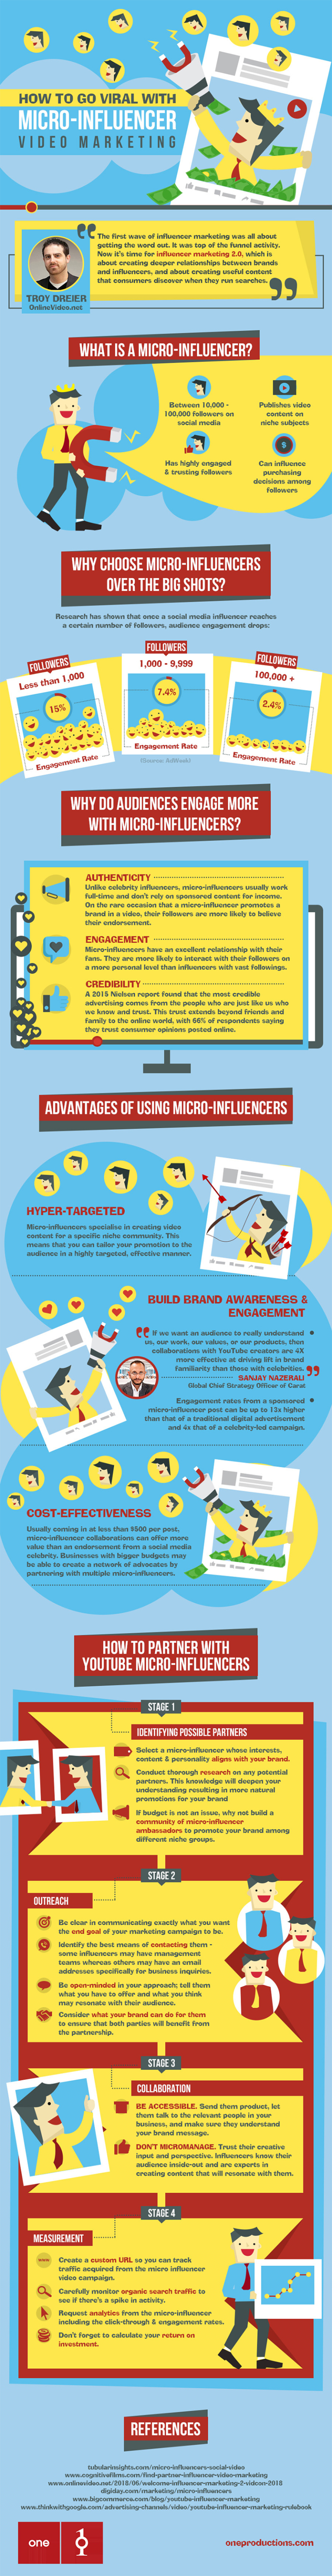 Infographic provides tips on how to utilize micro-influencers